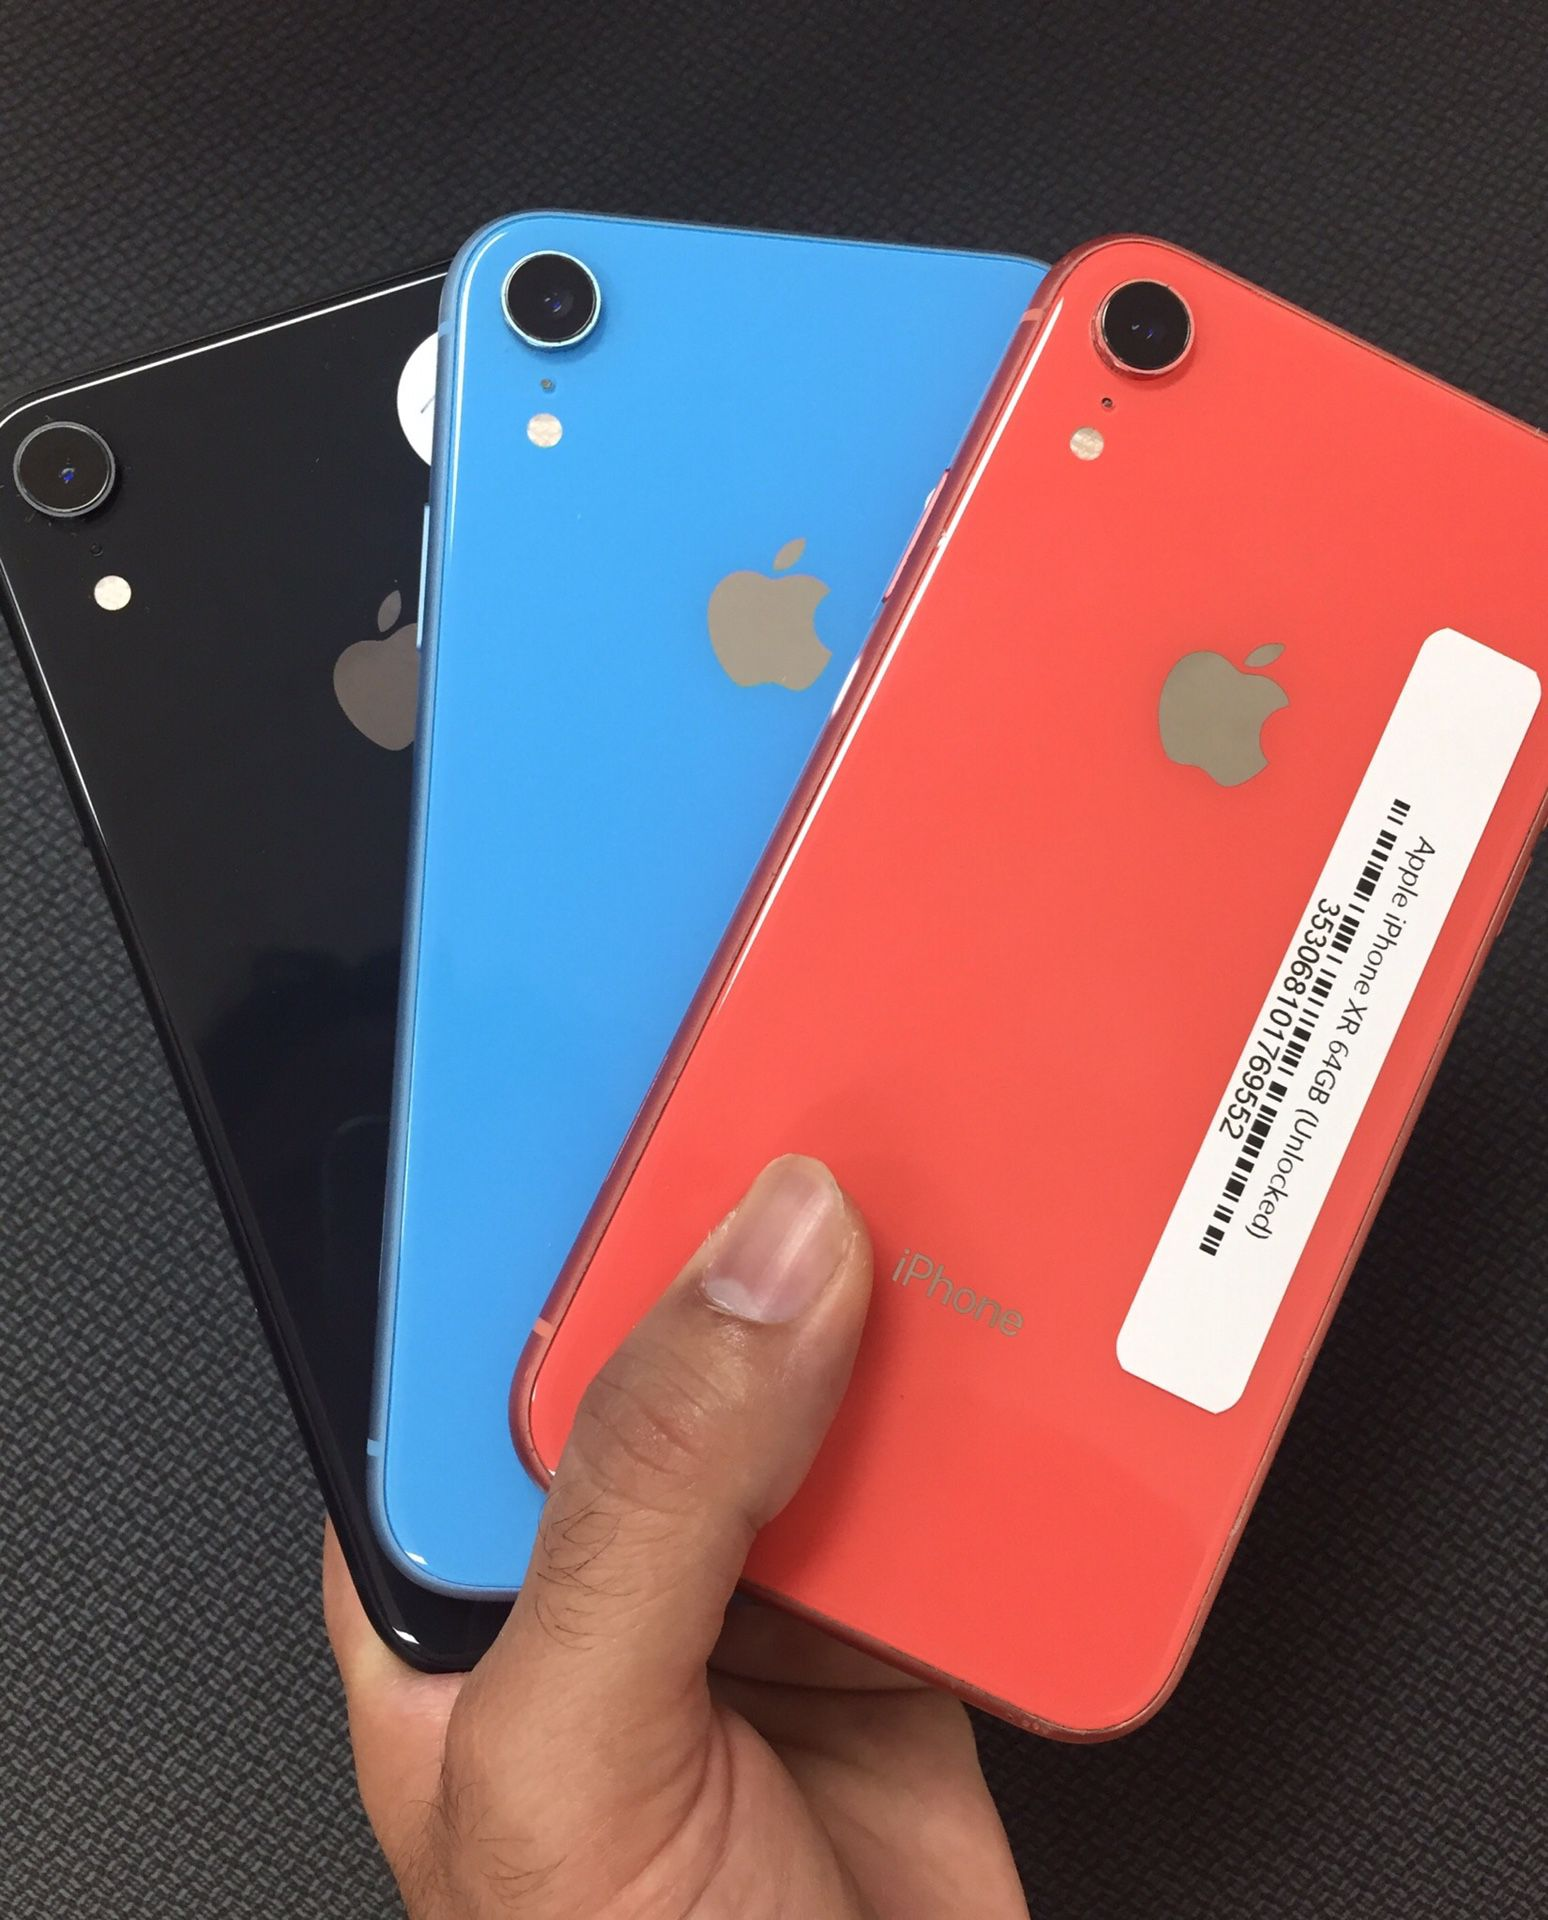 iPhone XR Unlocked Like New Condition with 30 Days Warranty